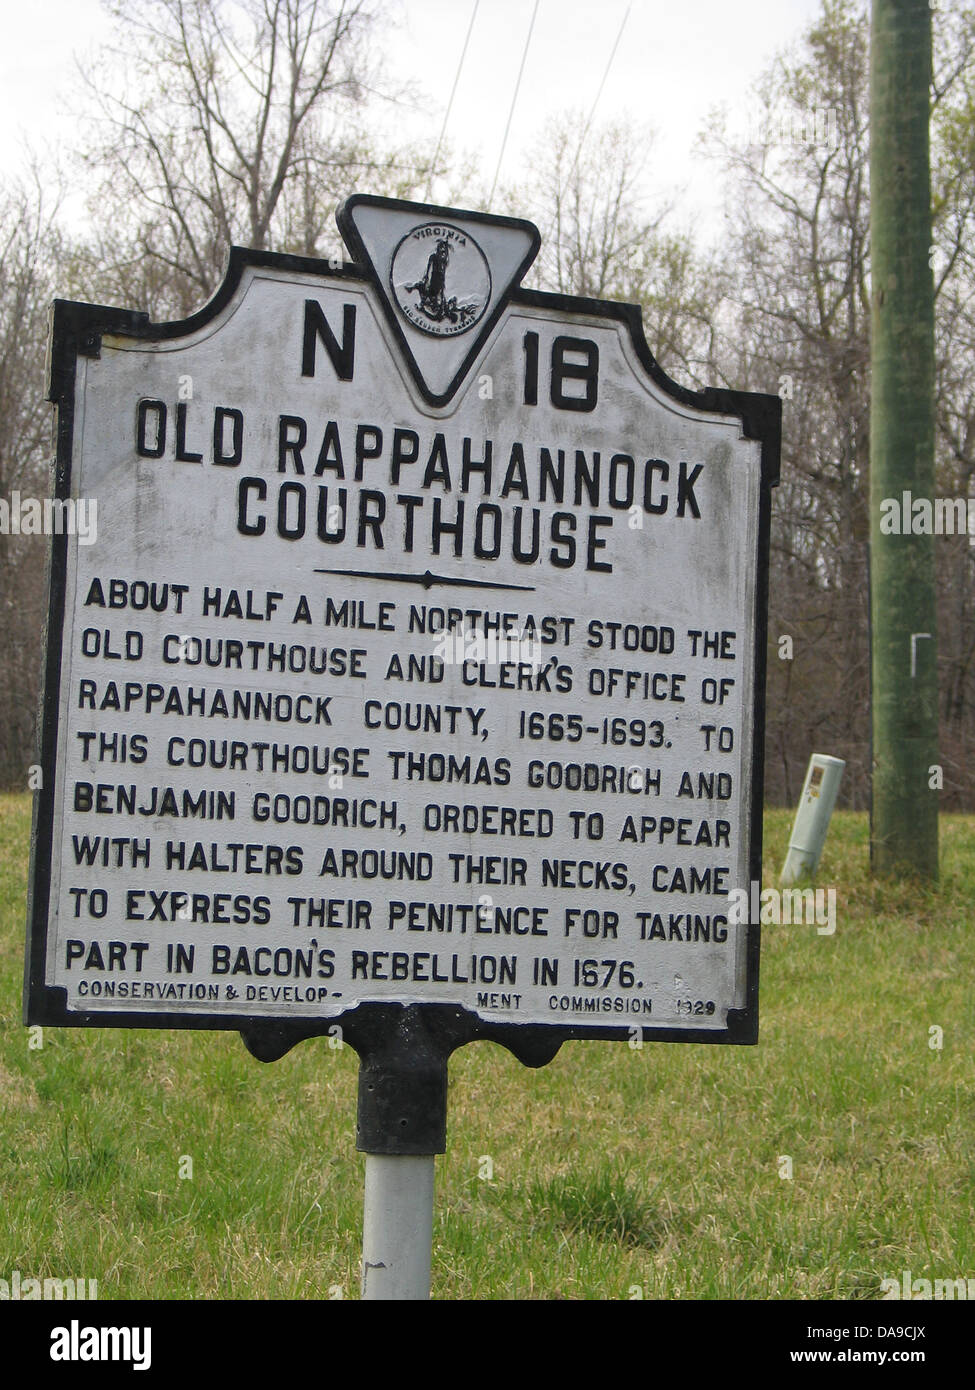 OLD RAPPAHANNOCK COURTHOUSE About half a mile northeast stood the old courthouse and clerk's office of Rappahannock Stock Photo